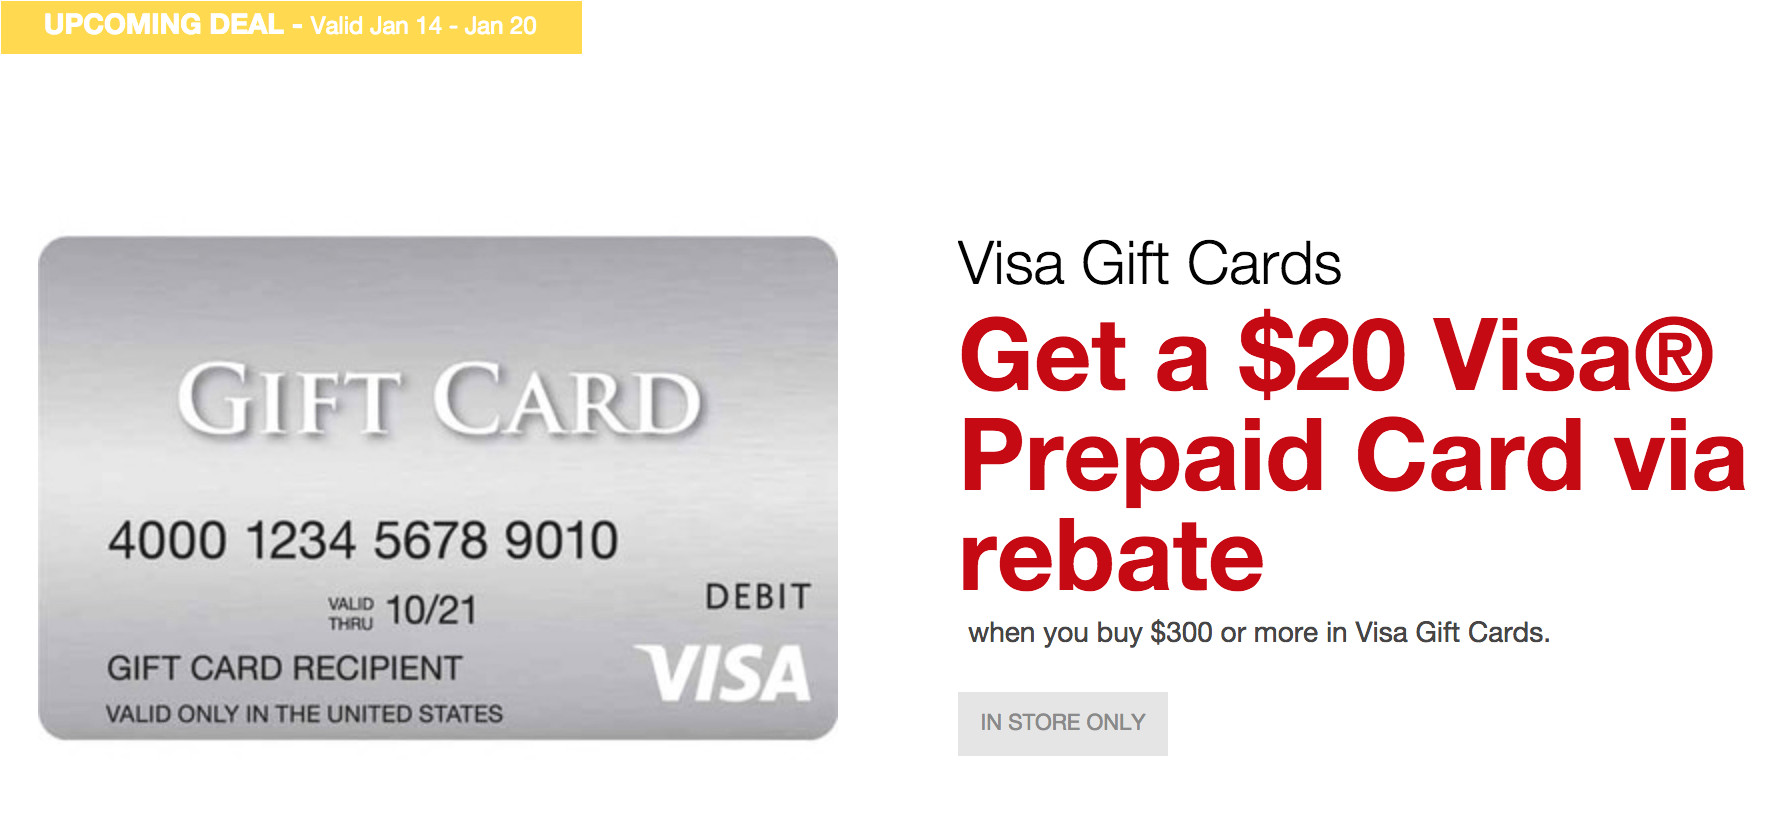 staples is offering a 20 prepaid visa rebate when buying 300 in visa gift cards from a staples store from 1 14 1 20